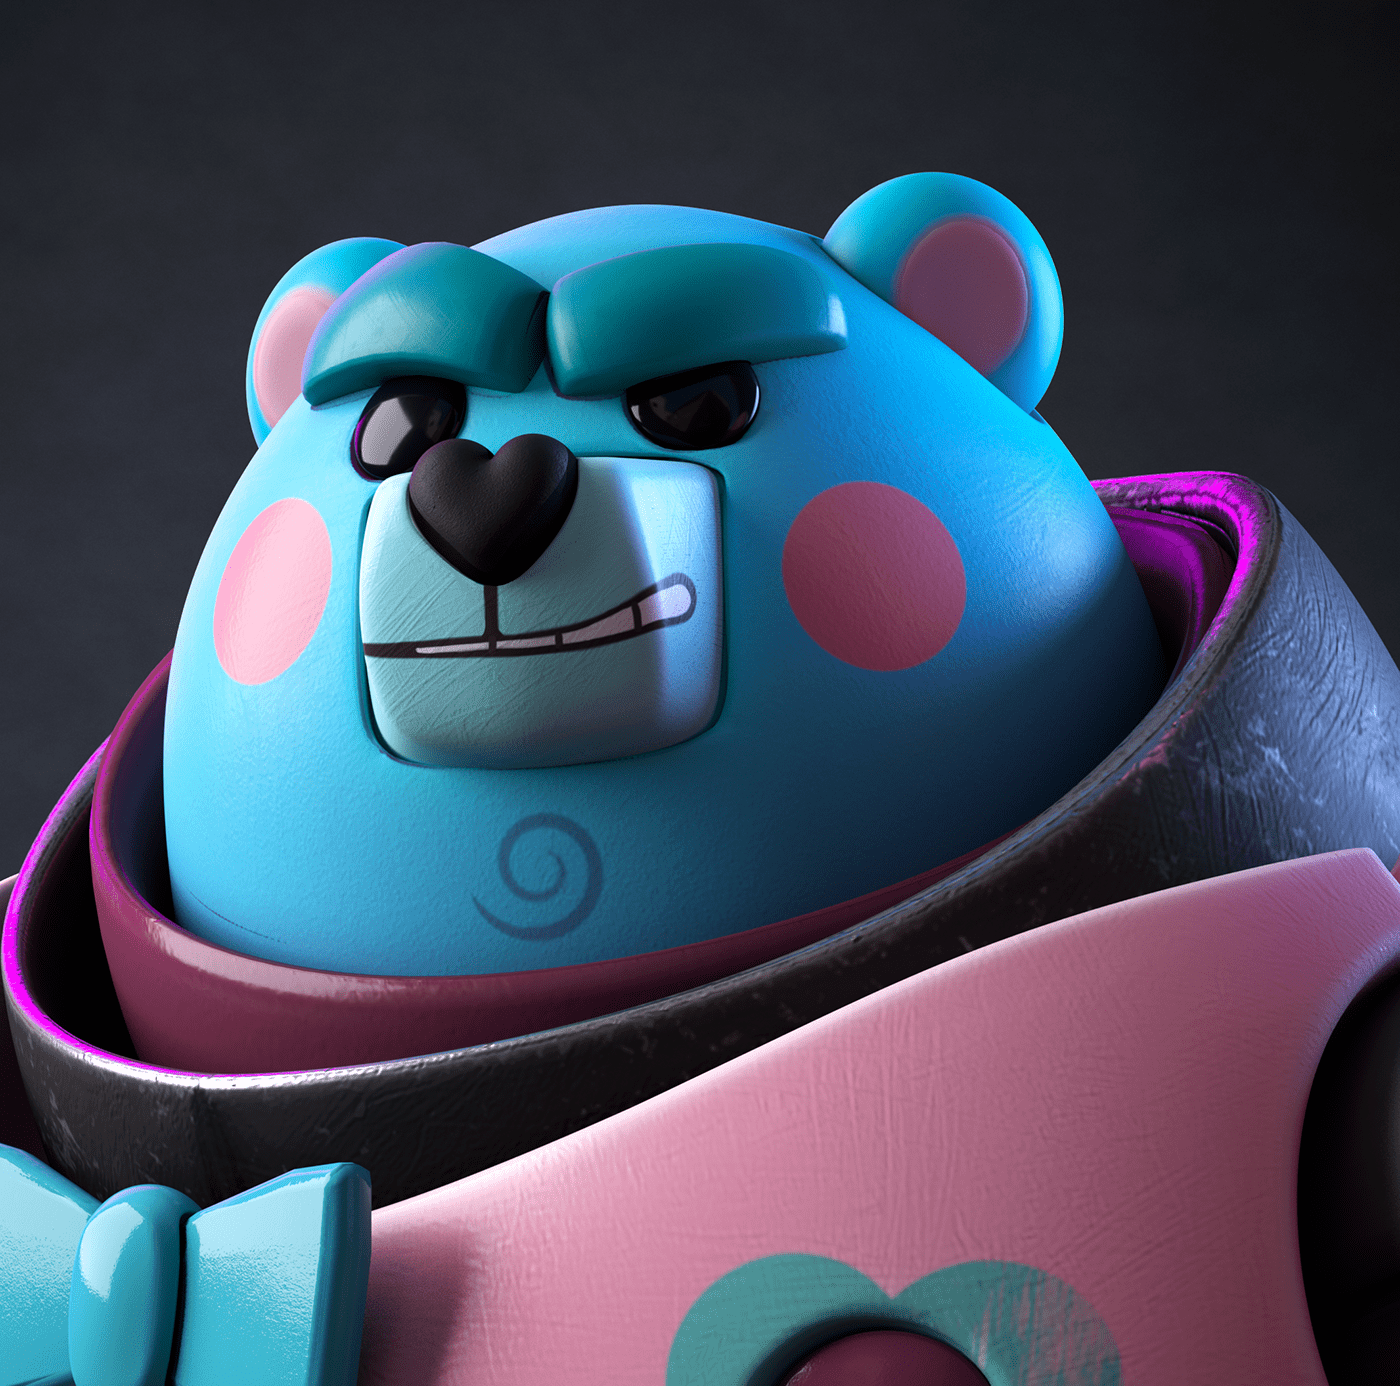 toy bear design story Character robot Space  buzz light year